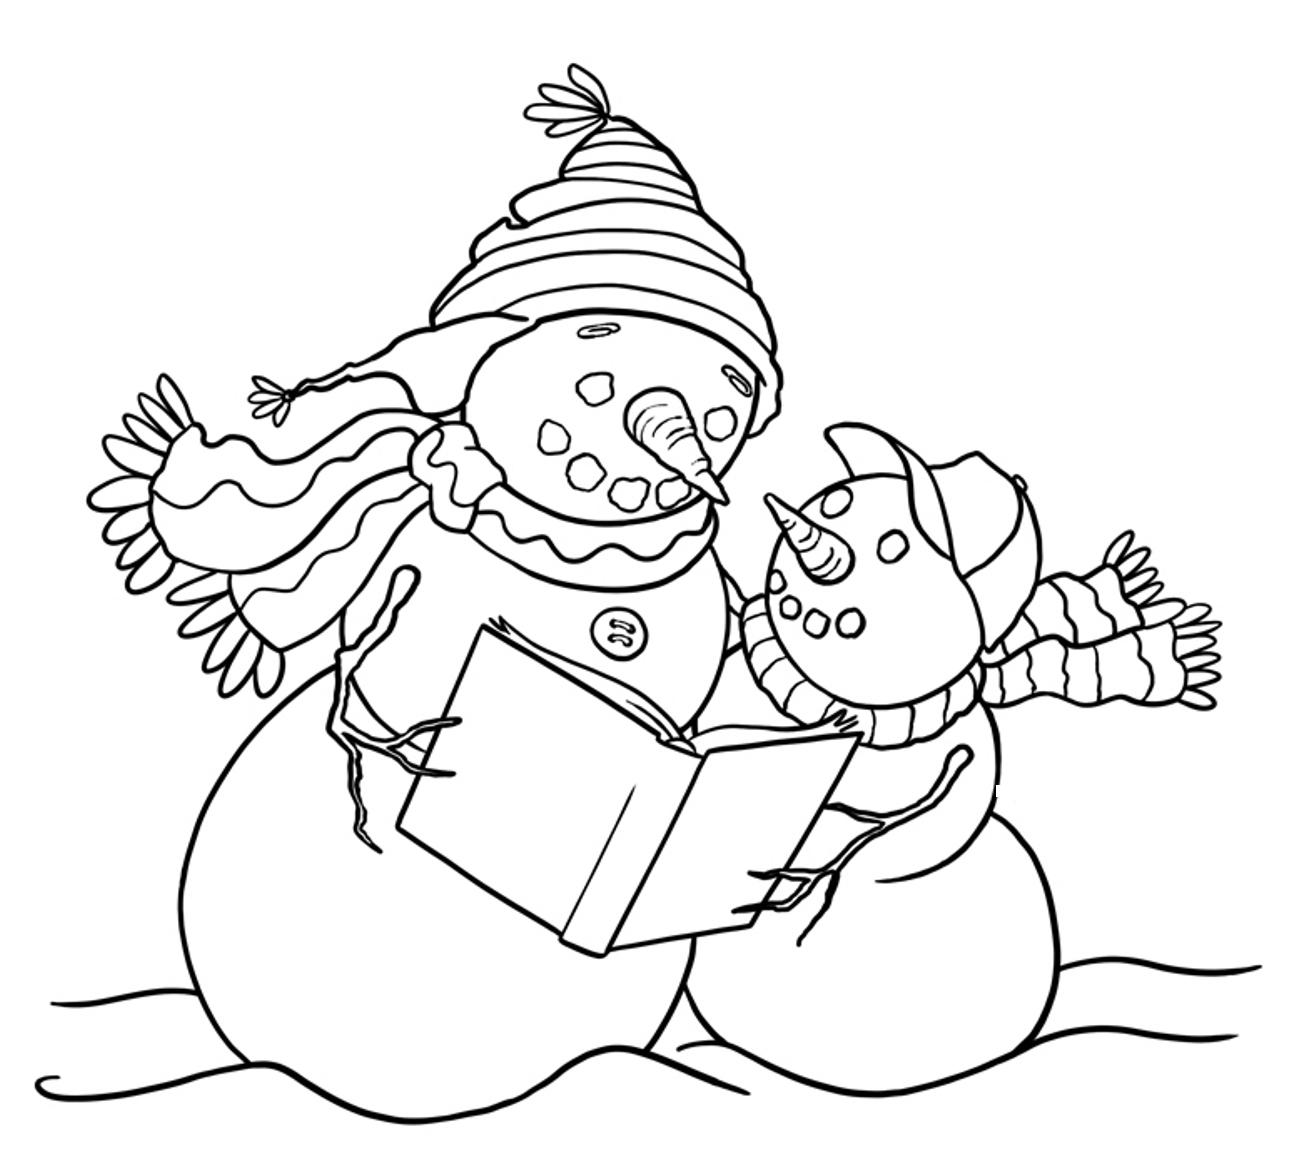 coloring snowman snowman family coloring pages at getcoloringscom free coloring snowman